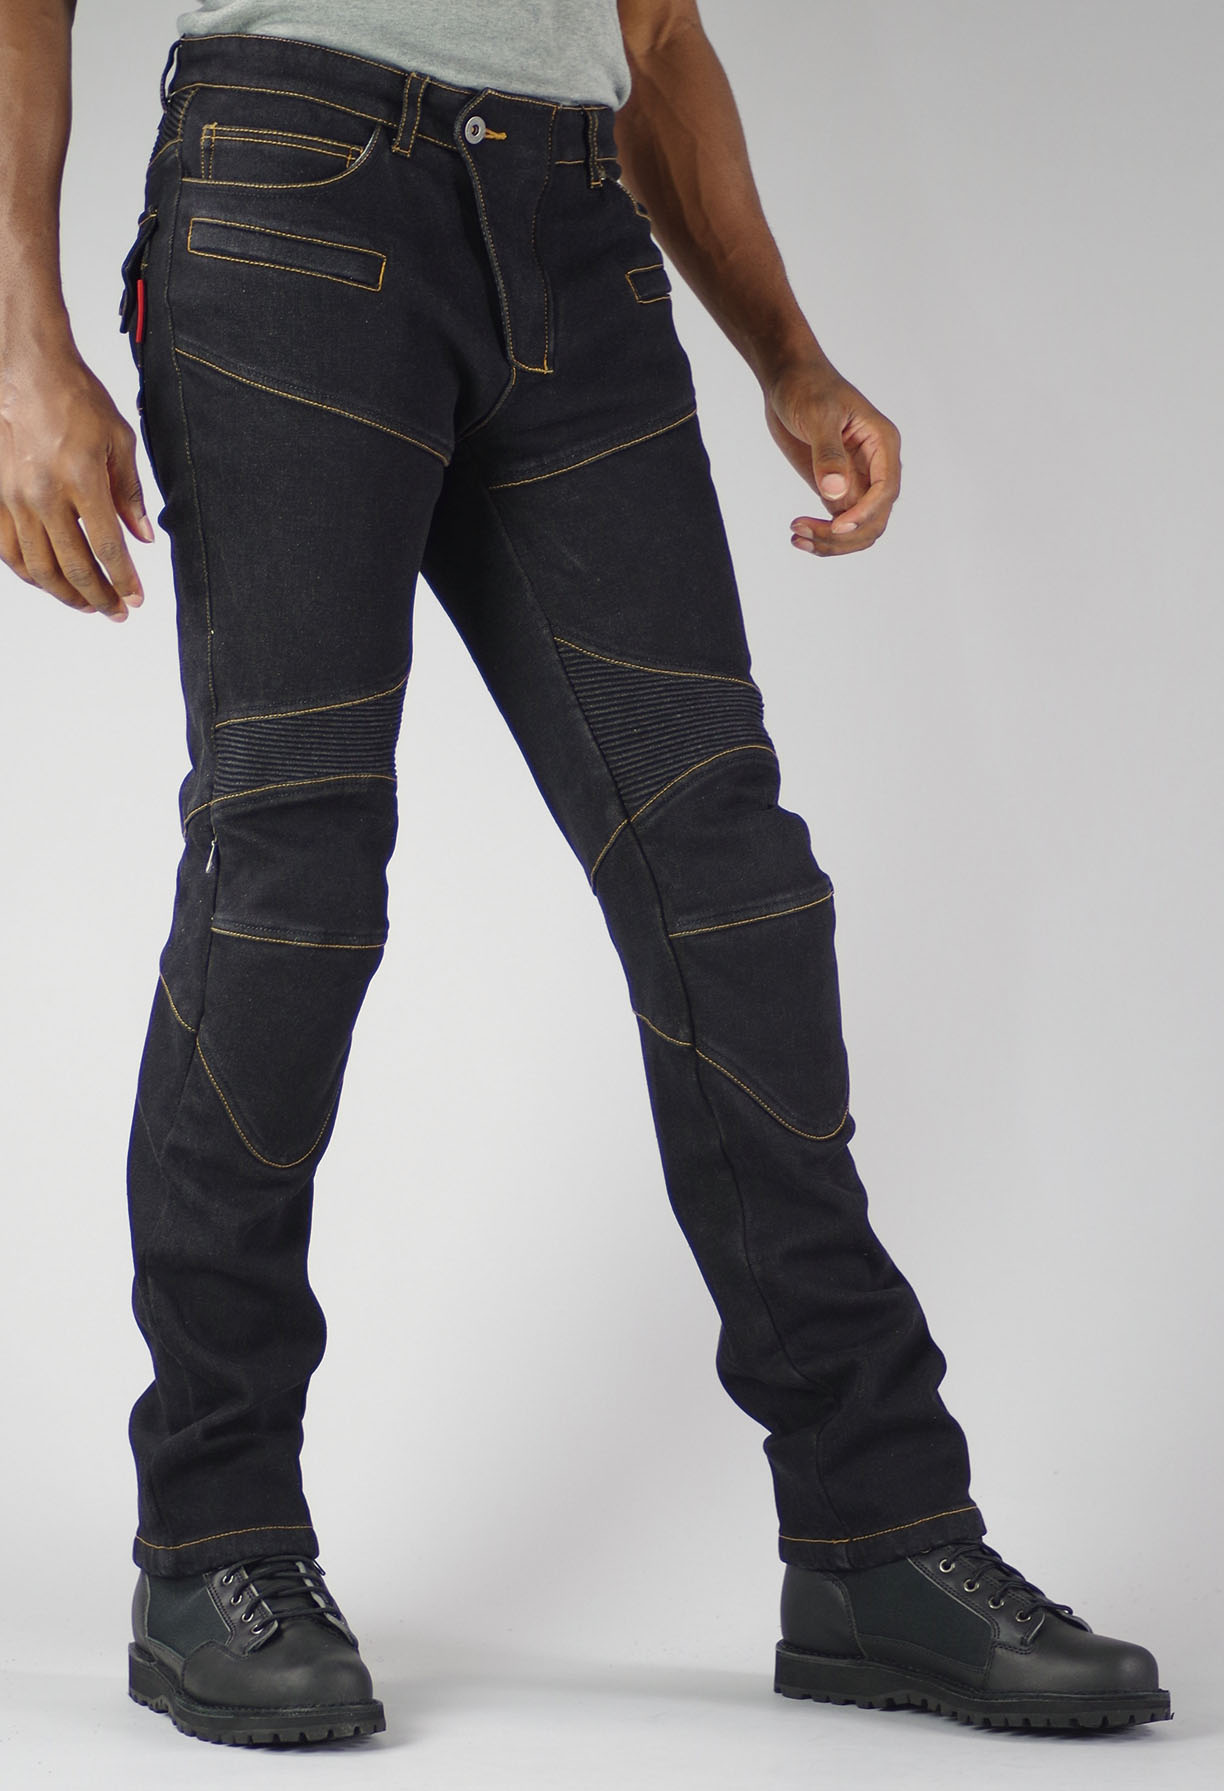 KOMINE Jeans in denim caldo Super Fit WJ-921S